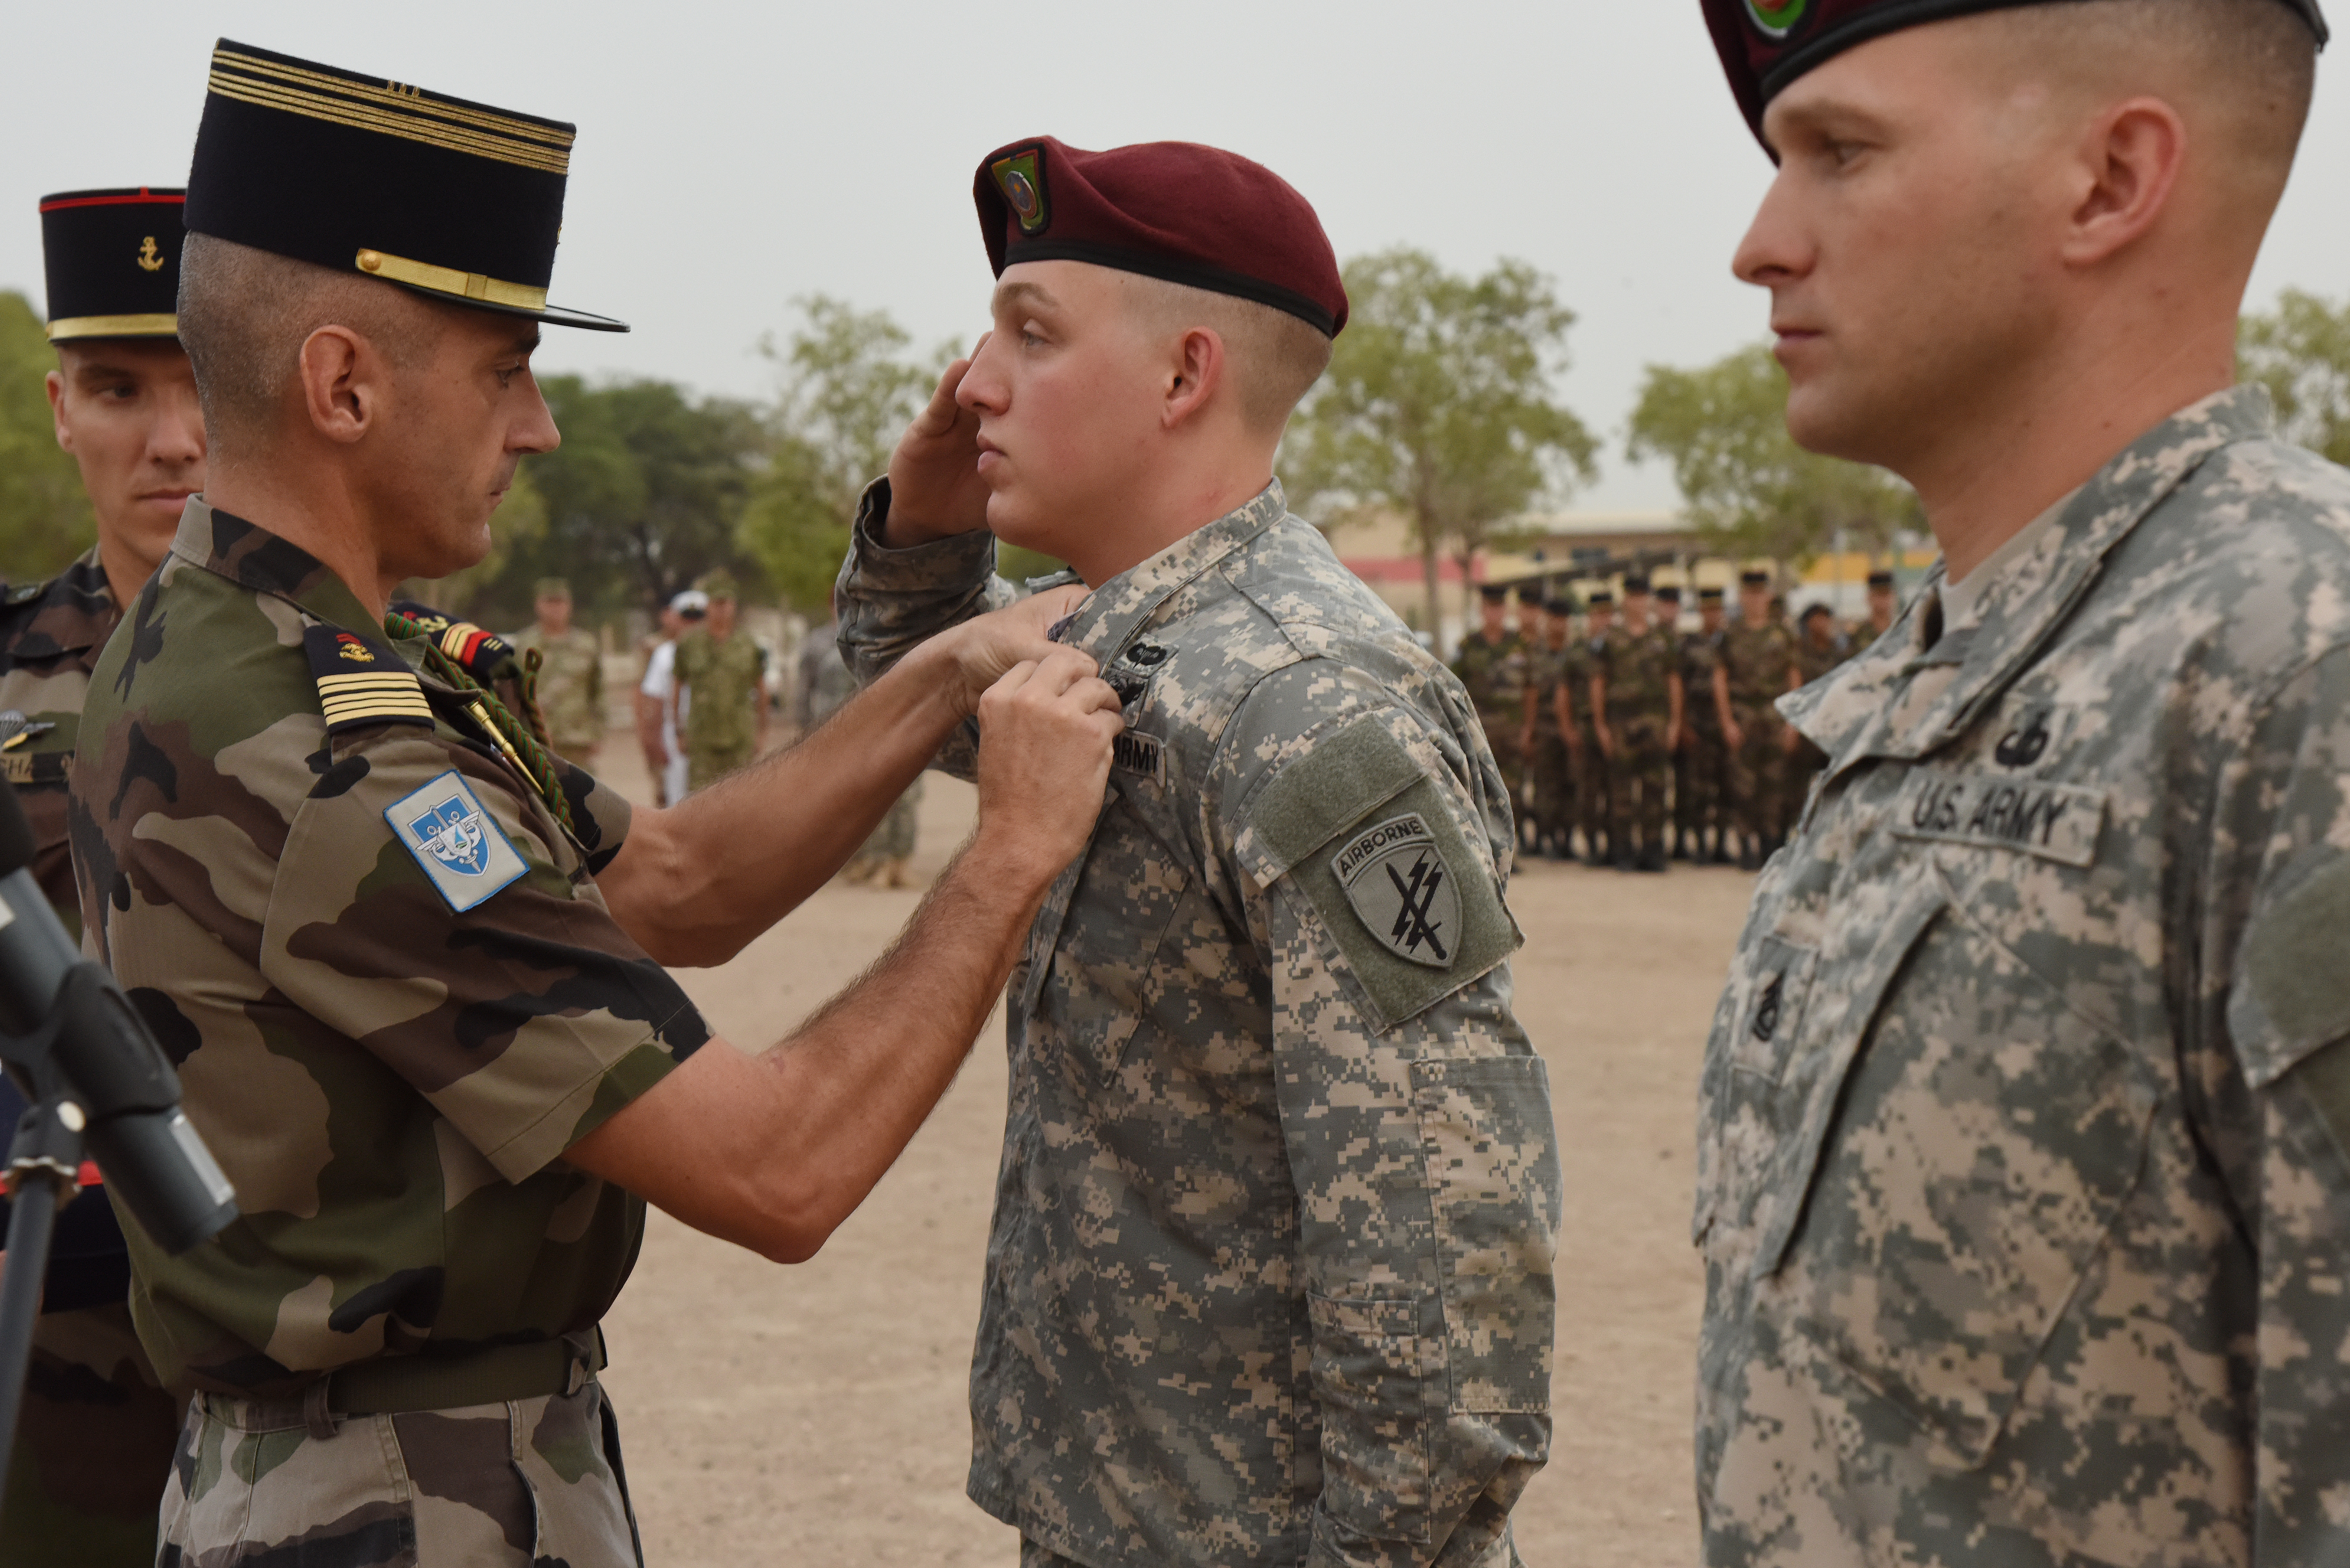 French Marine Col. Jean-Bruno Despouys, 5th Marines commanding officer, pins a National Defense Medal on U.S. Army Sgt. Robert Hames during an award ceremony at a Naval base in Djibouti, June 11, 2015, due to his life-saving medical care to a French service member during a catastrophic motor vehicle accident in February.  (U.S. Air Force photo by Staff Sgt. Maria Bowman)